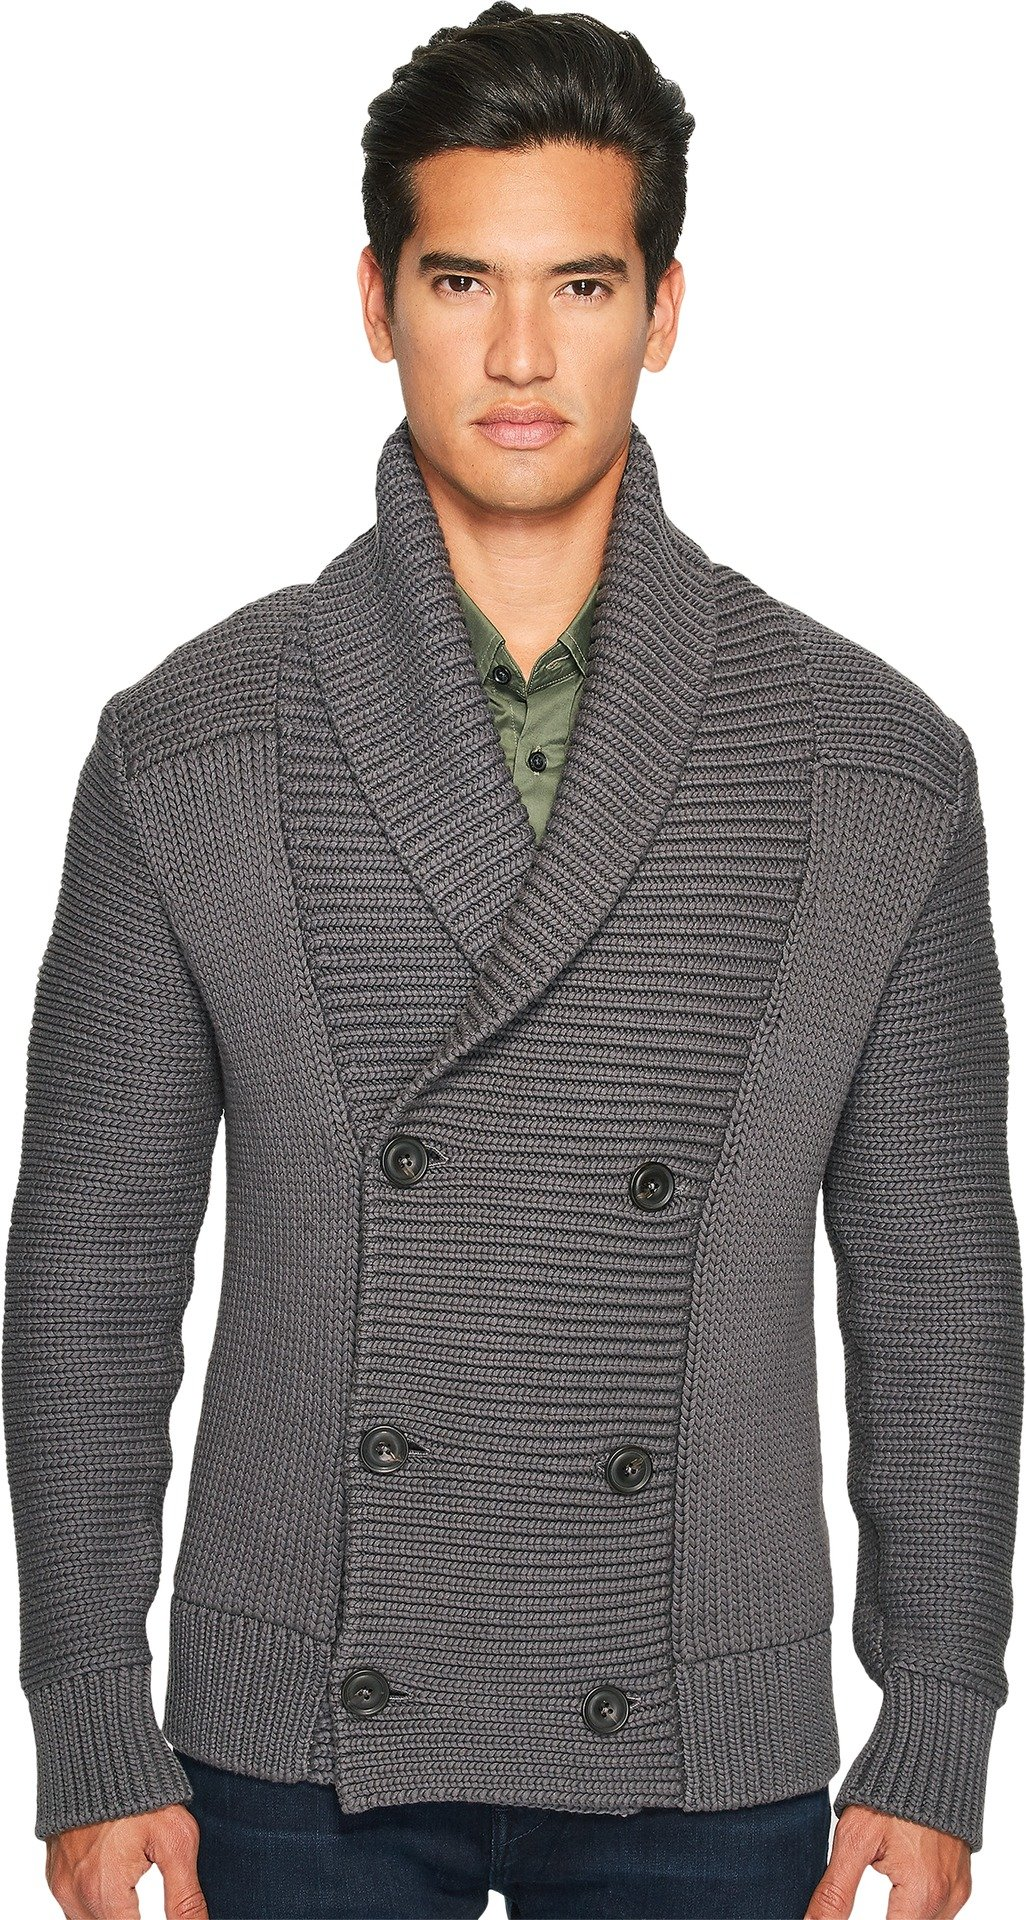 Vince Men's Solid Double Breasted Cardigan, Sulphur, Large